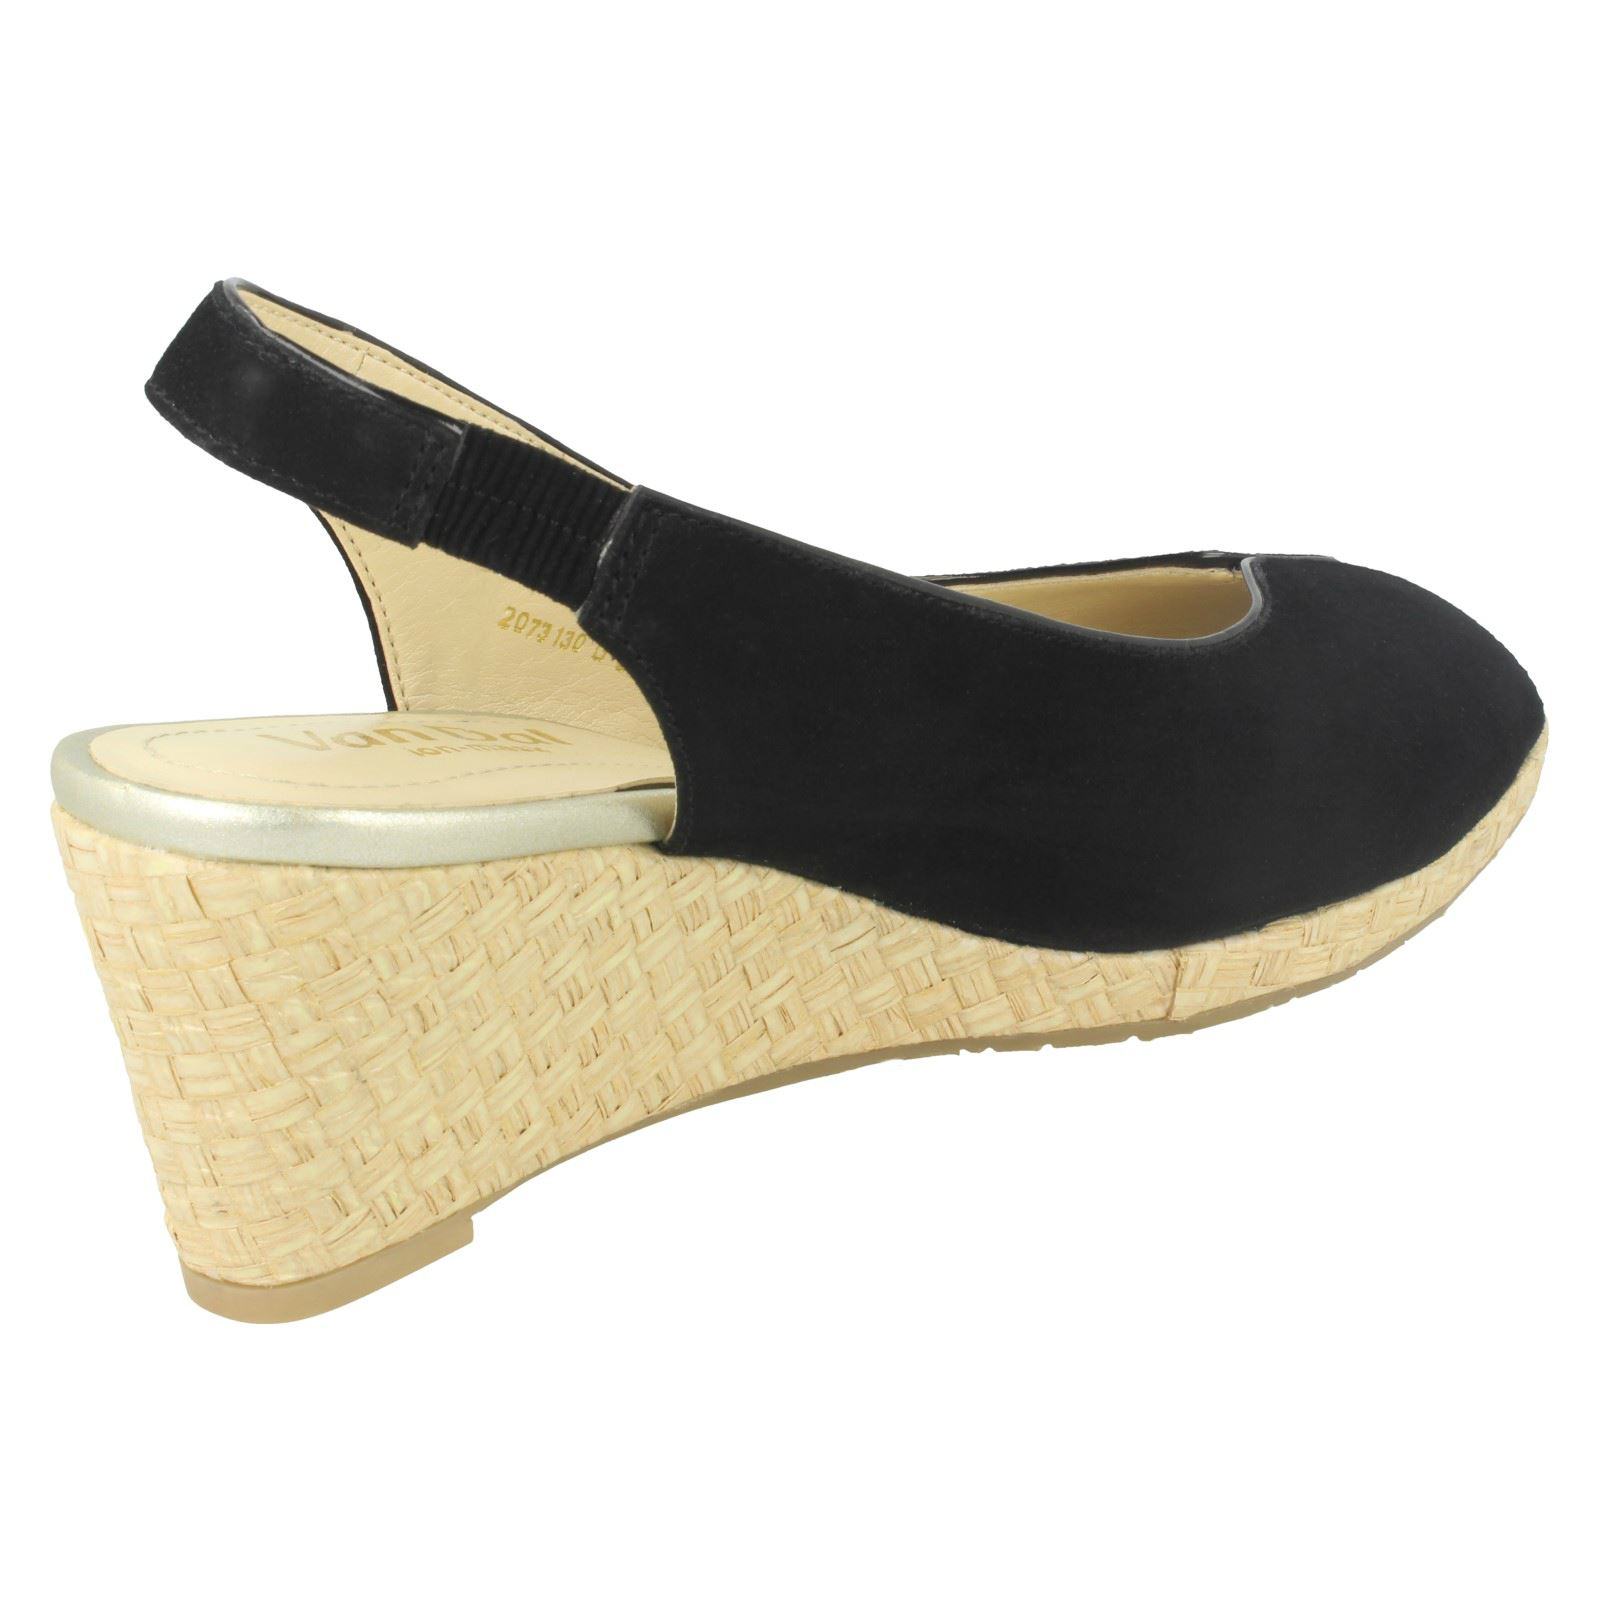 Ladies-Van-Dal-Leather-Wedge-Sandal-With-Woven-Detail-Avalon thumbnail 10